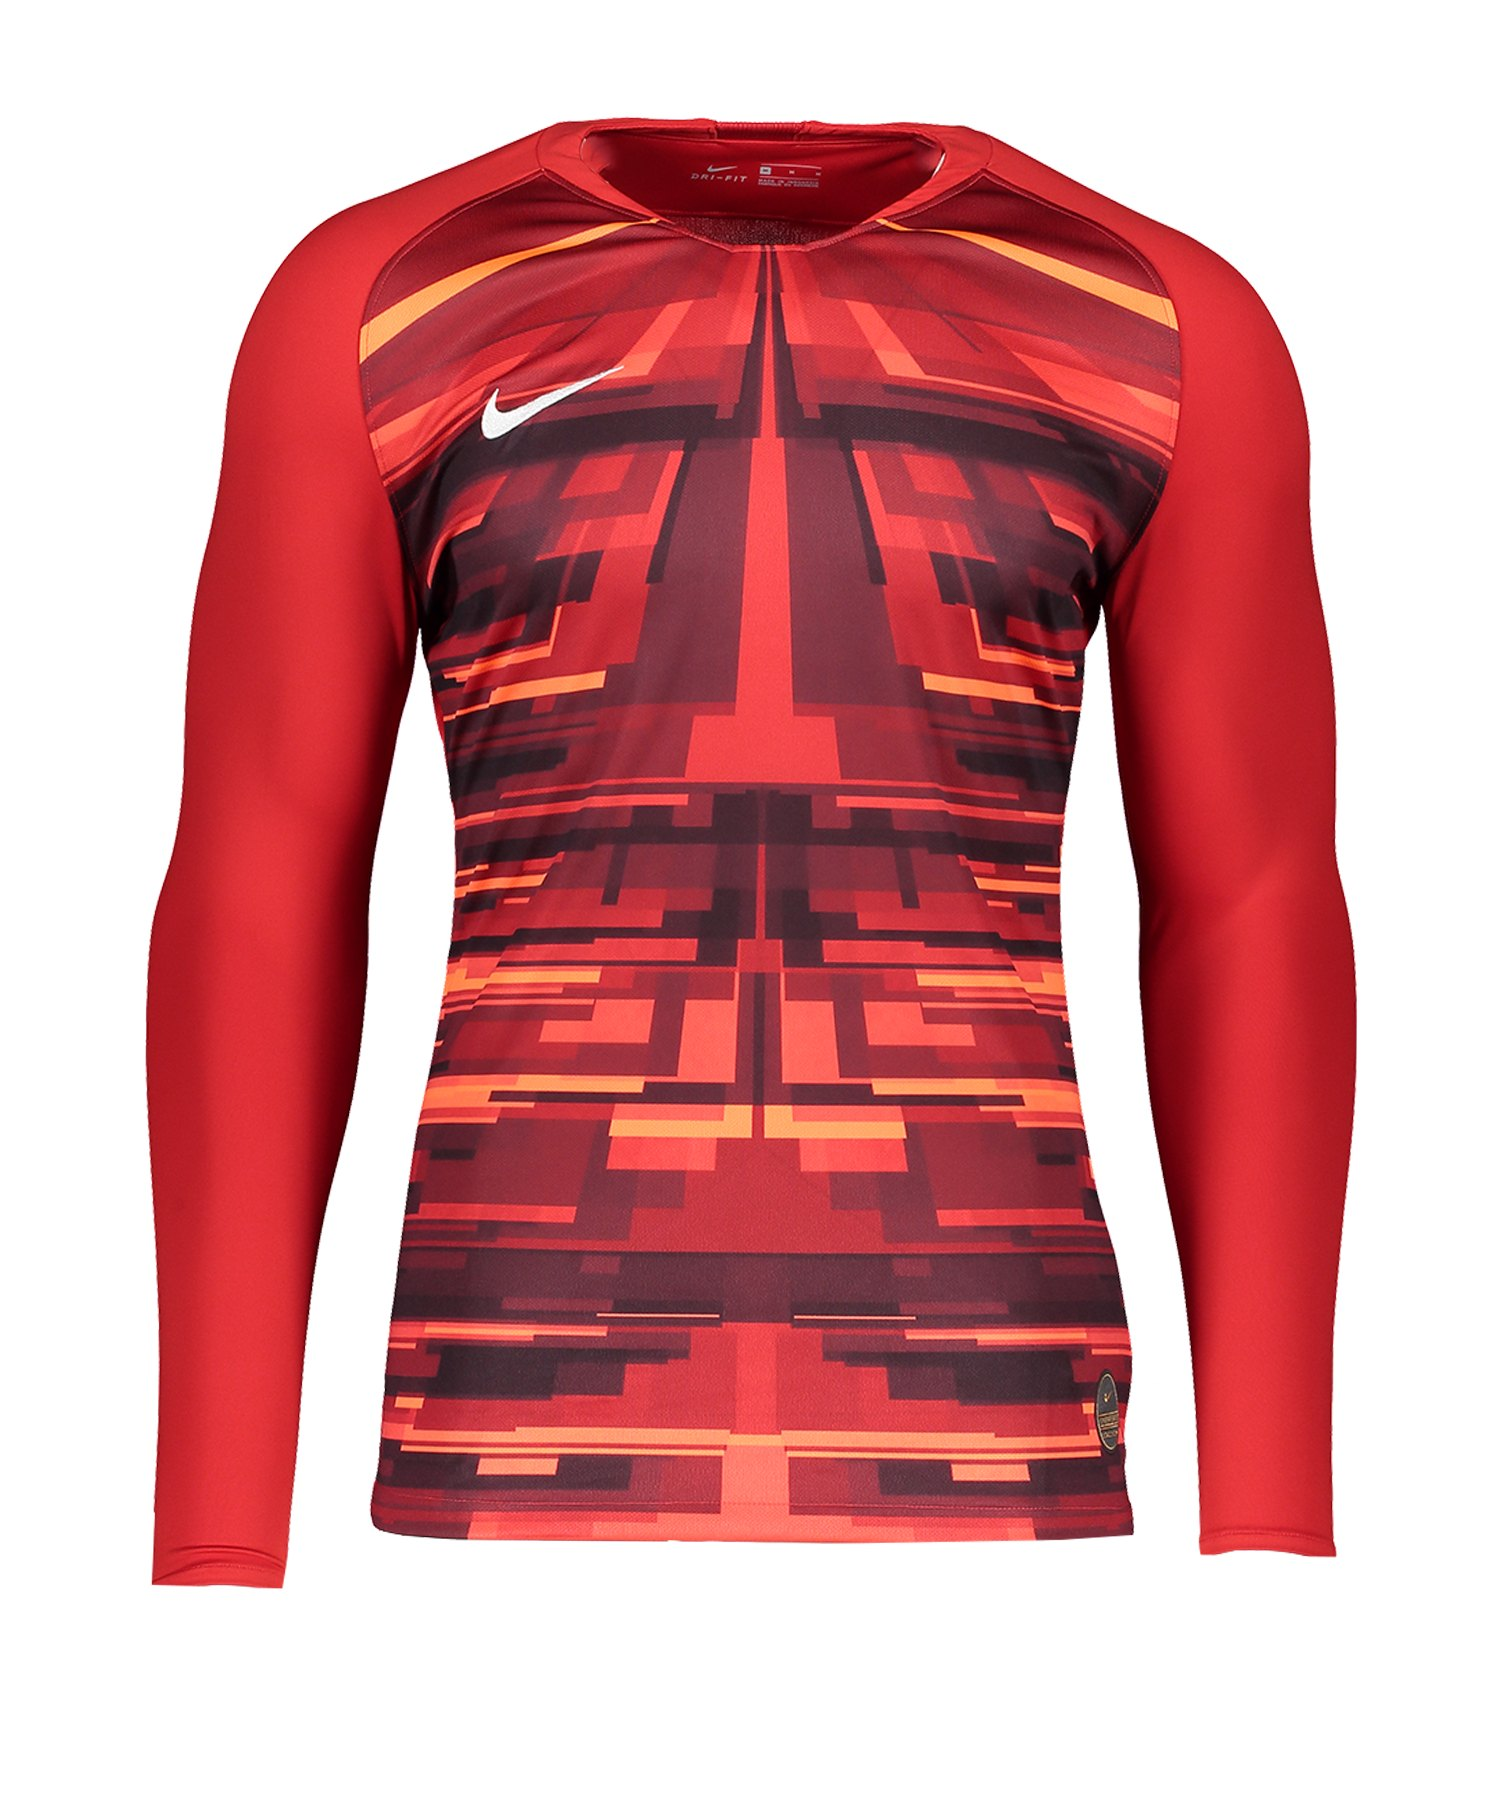 Nike Promo GK-Jersey LS Rot Weiss F657 - rot